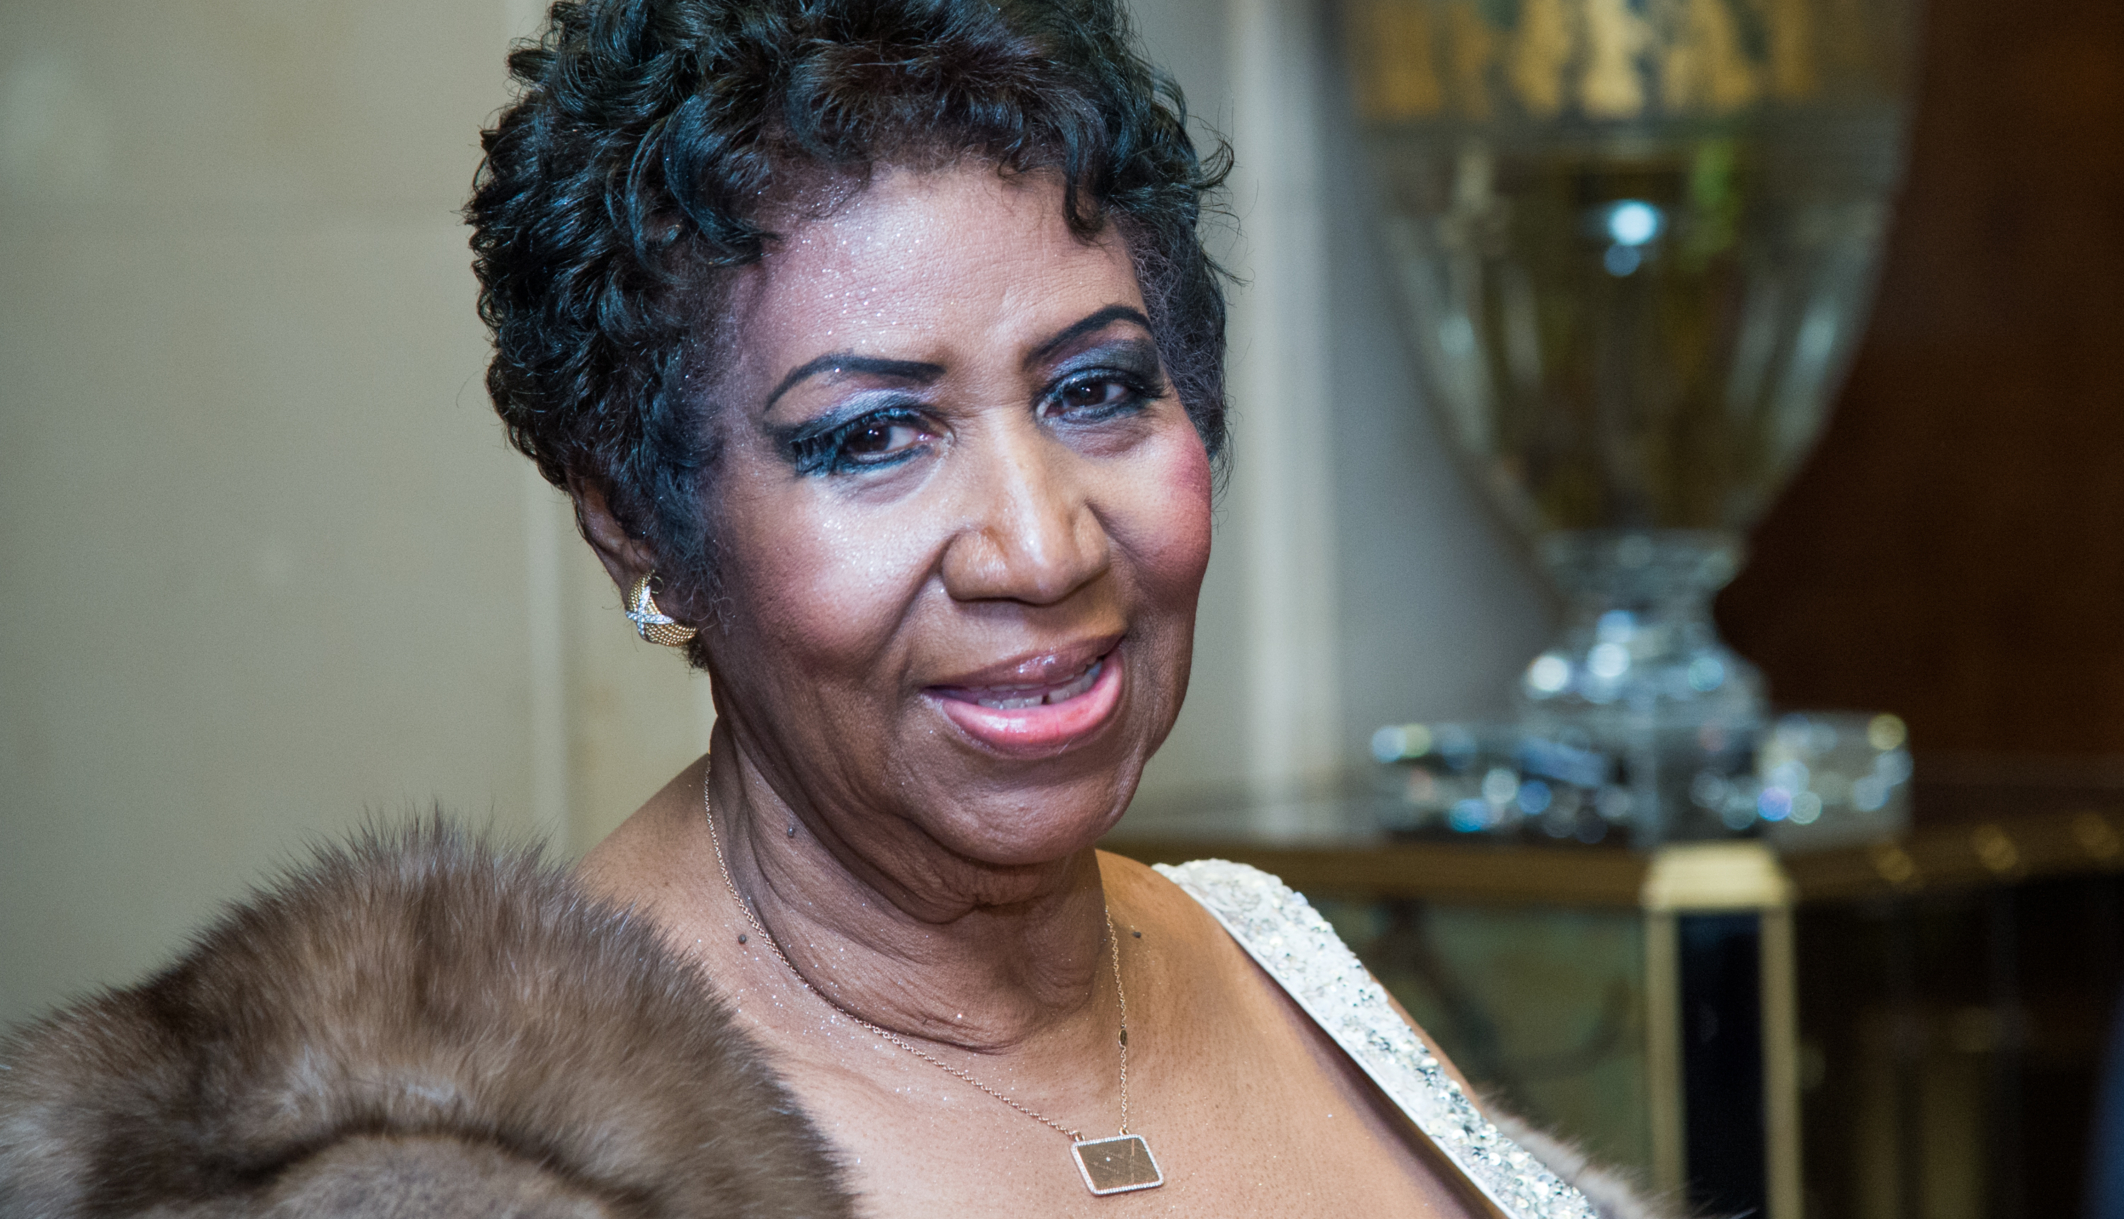 Thousands Gather To Pay Their Final Respects At Private Aretha Franklin Funeral